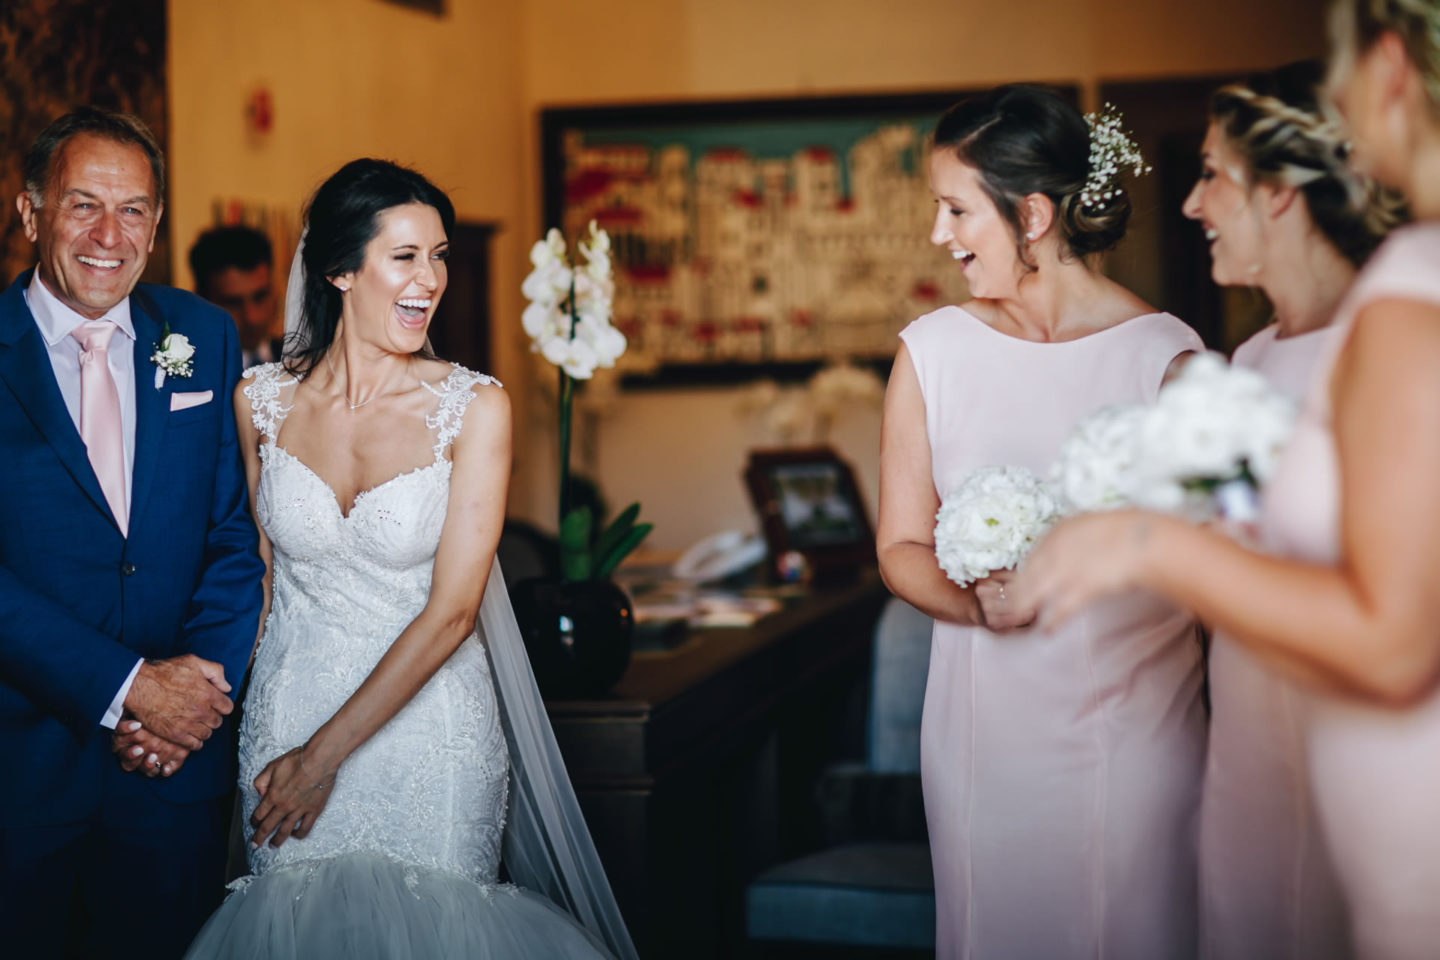 Fun :: Crazy wedding at Vincigliata Castle and Villa San Michele :: Luxury wedding photography - 11 :: Fun